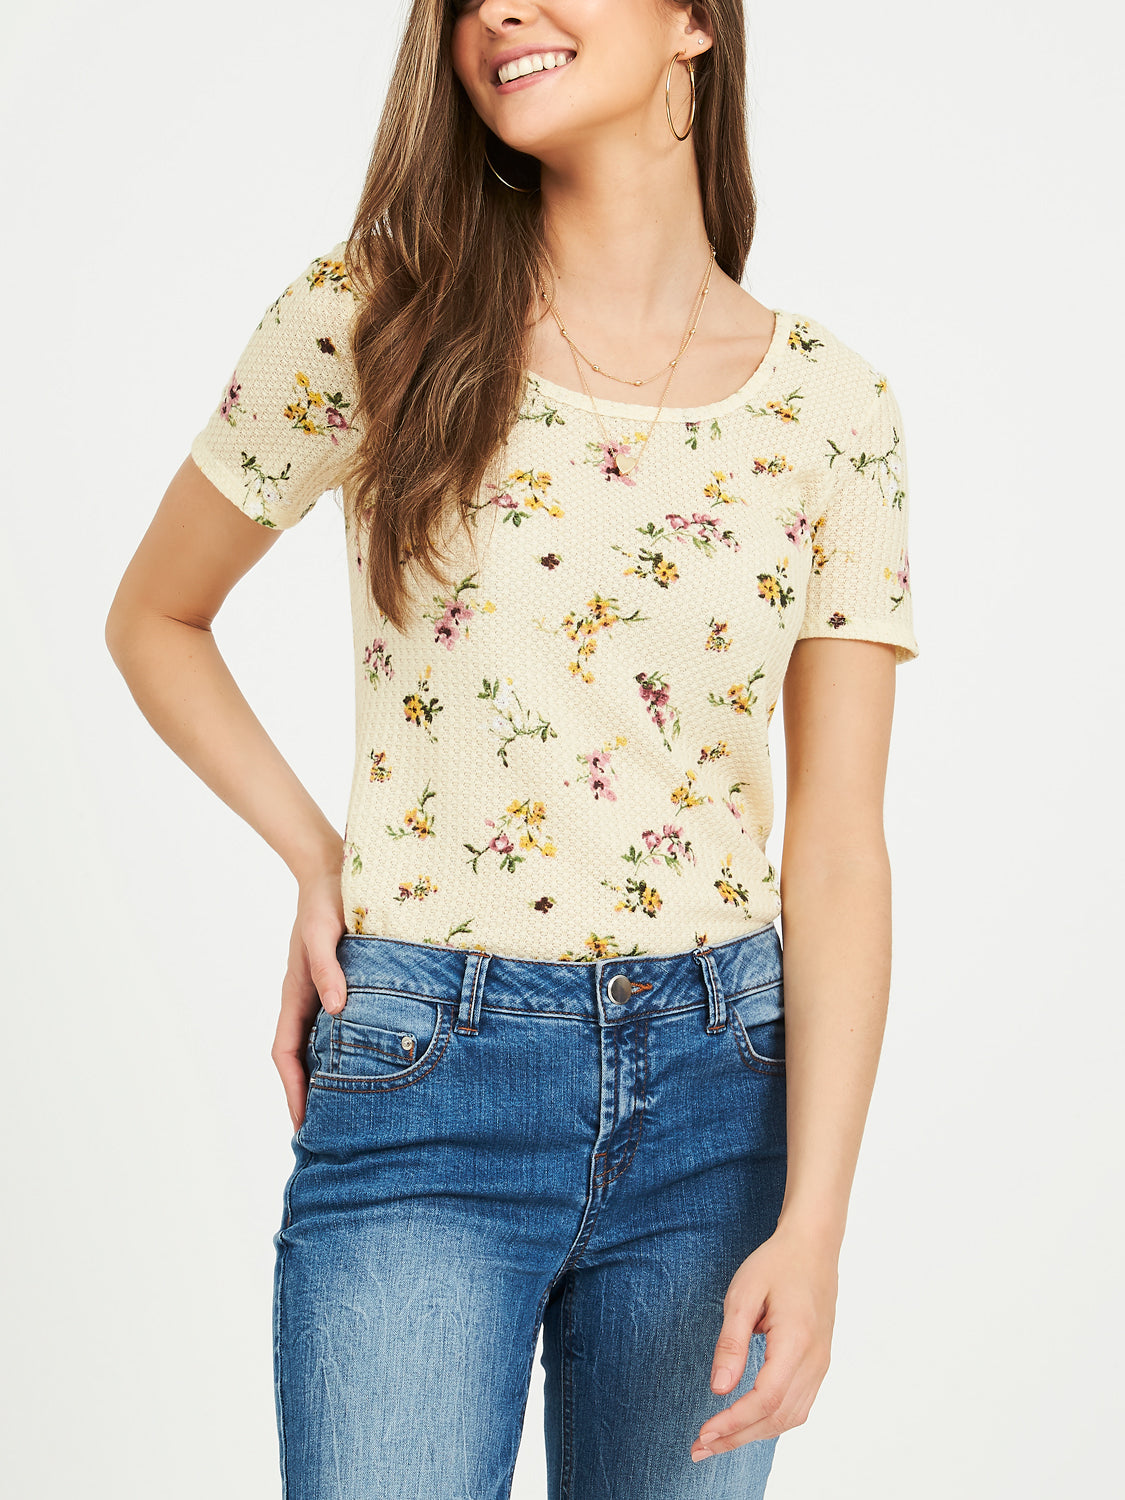 Floral Square Scoop Neck Waffle Knit Tee